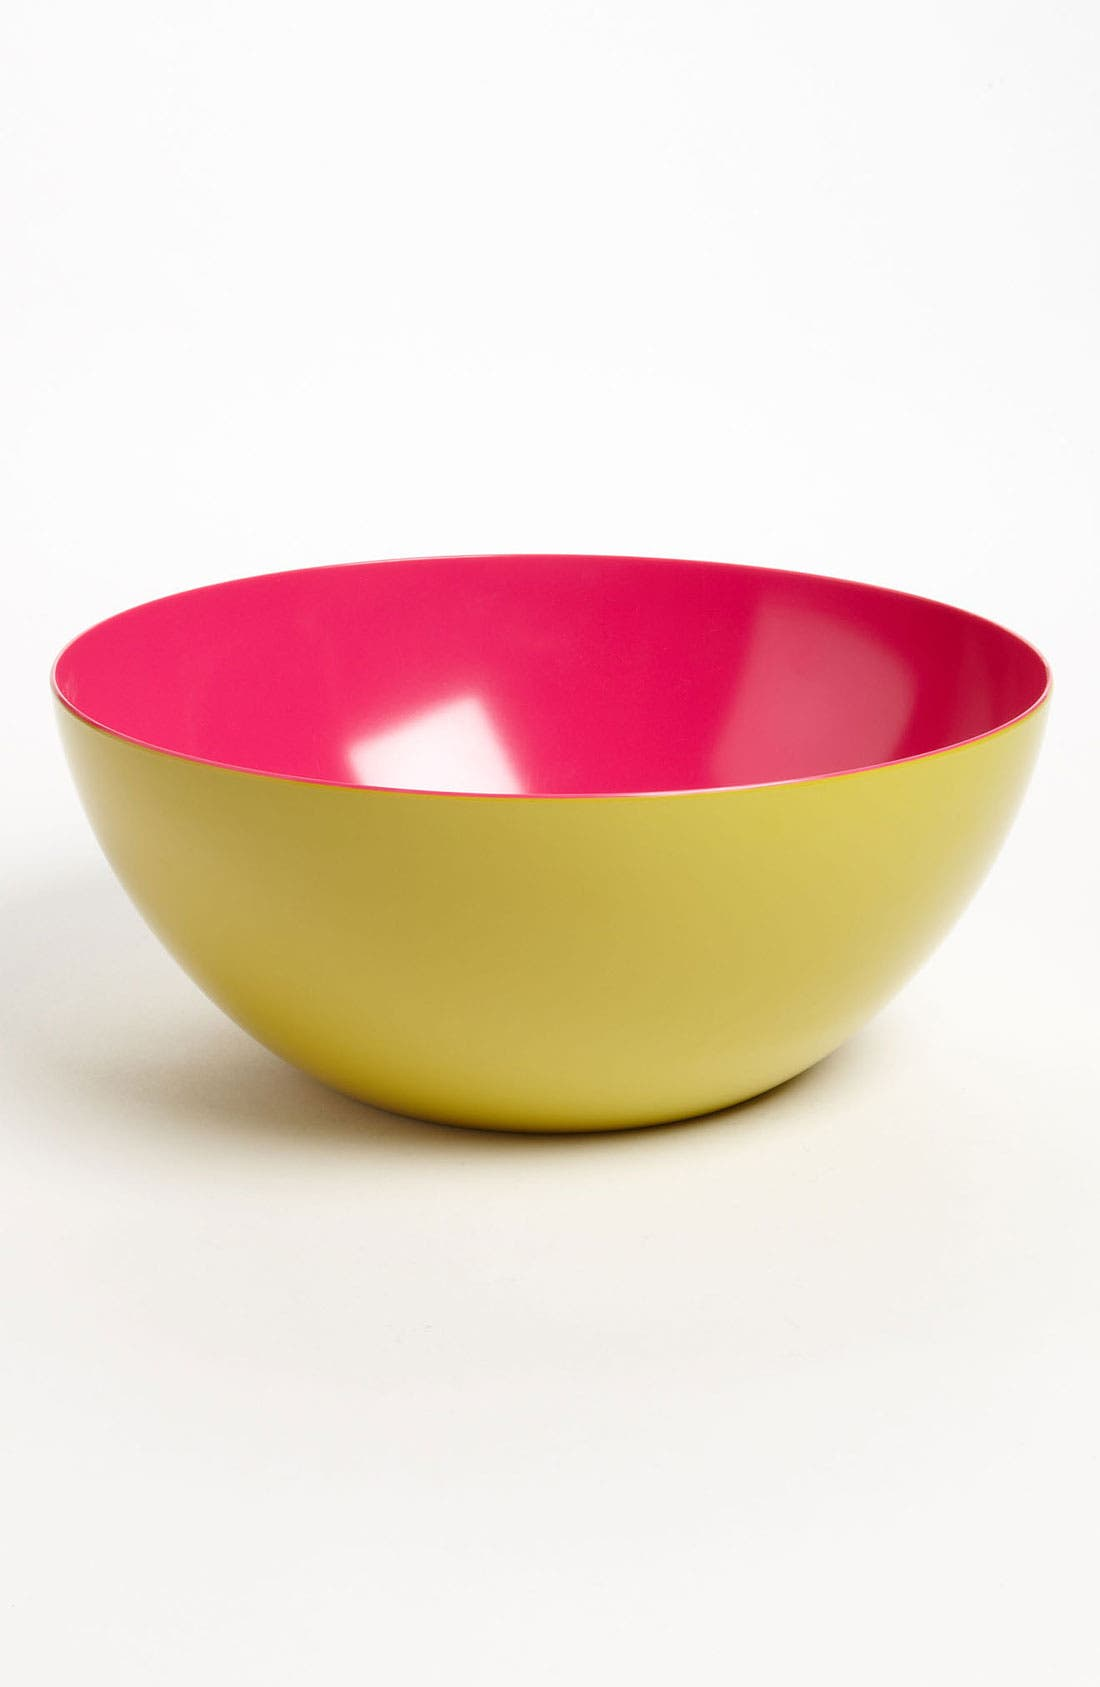 Alternate Image 1 Selected - Jonathan Adler 'Positano' Serving Bowl